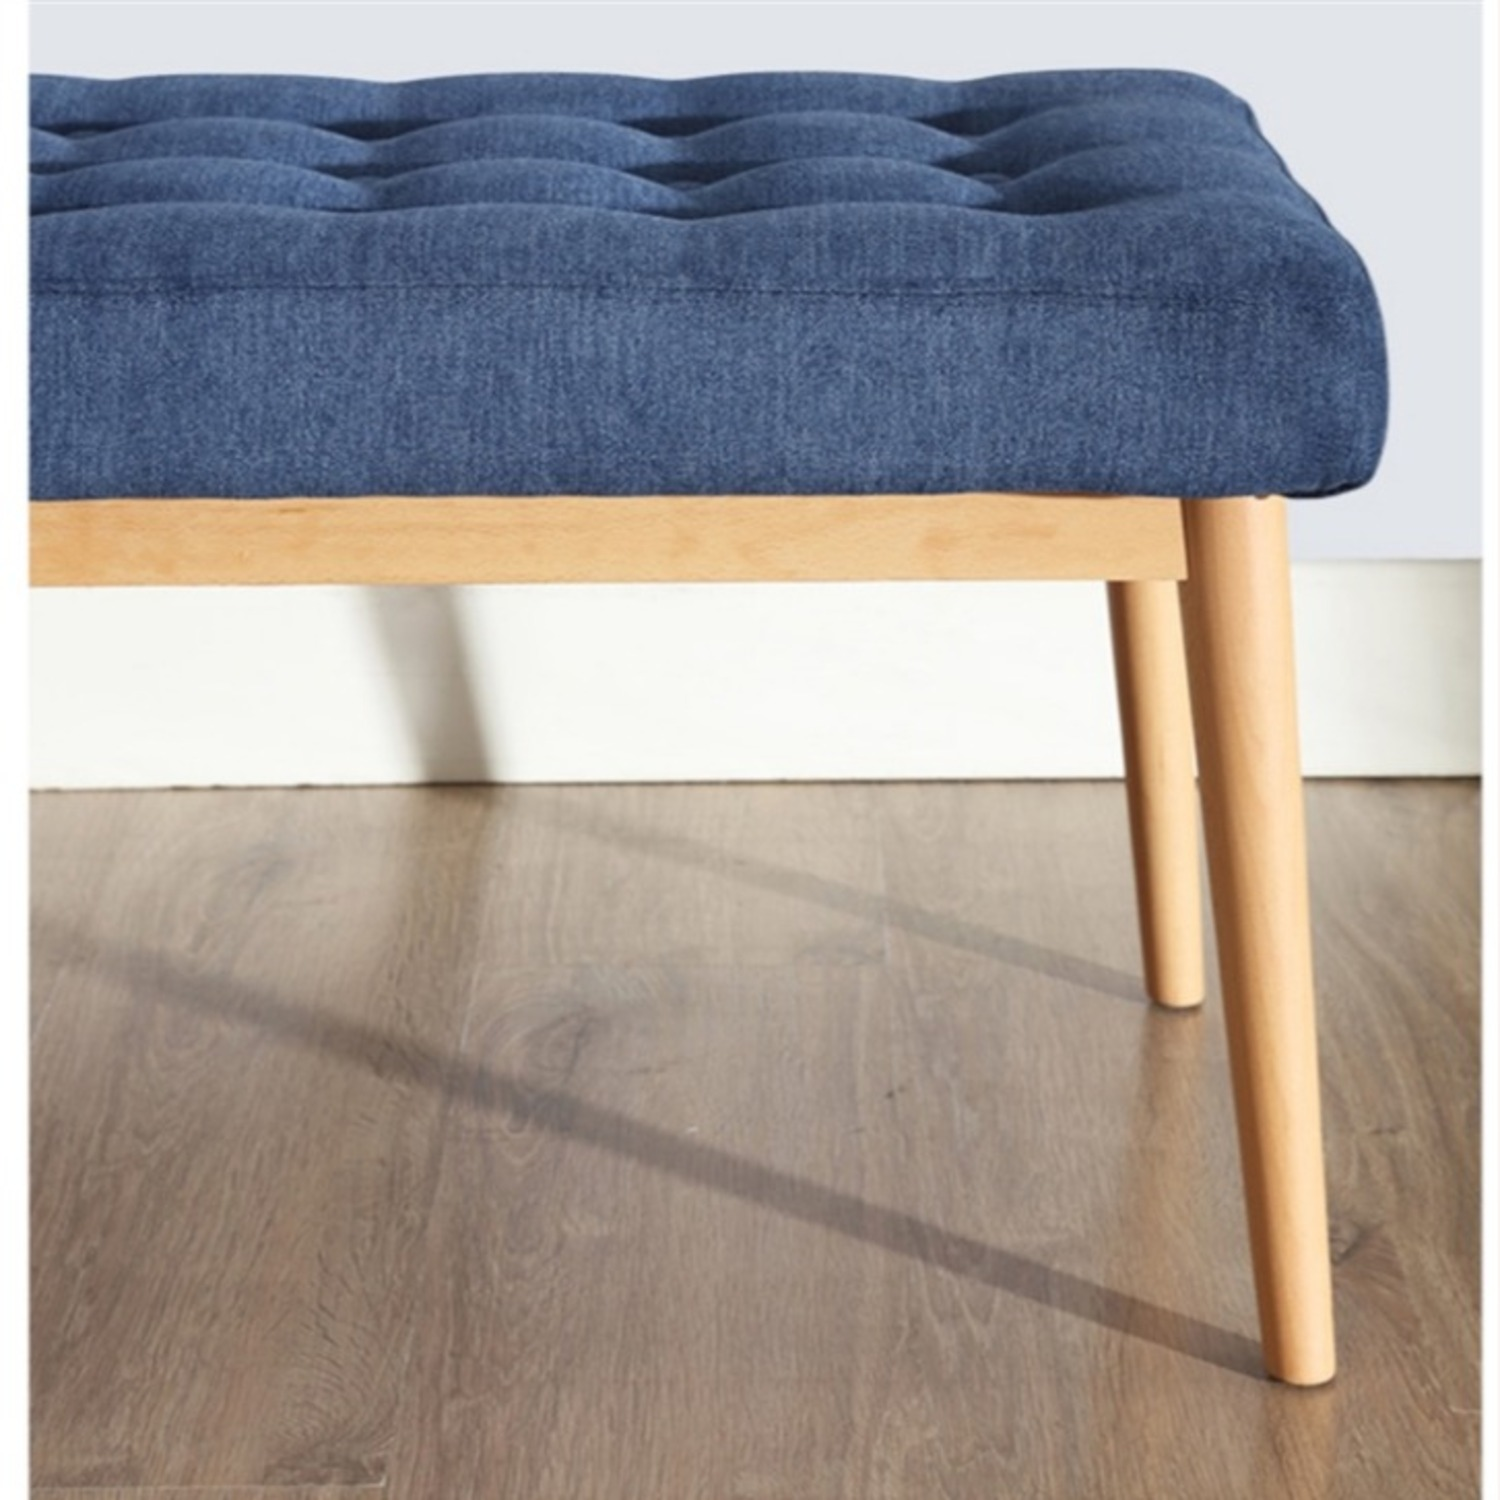 Bench In Blue Cotton Crafted W/ Beech Wood Base - image-3